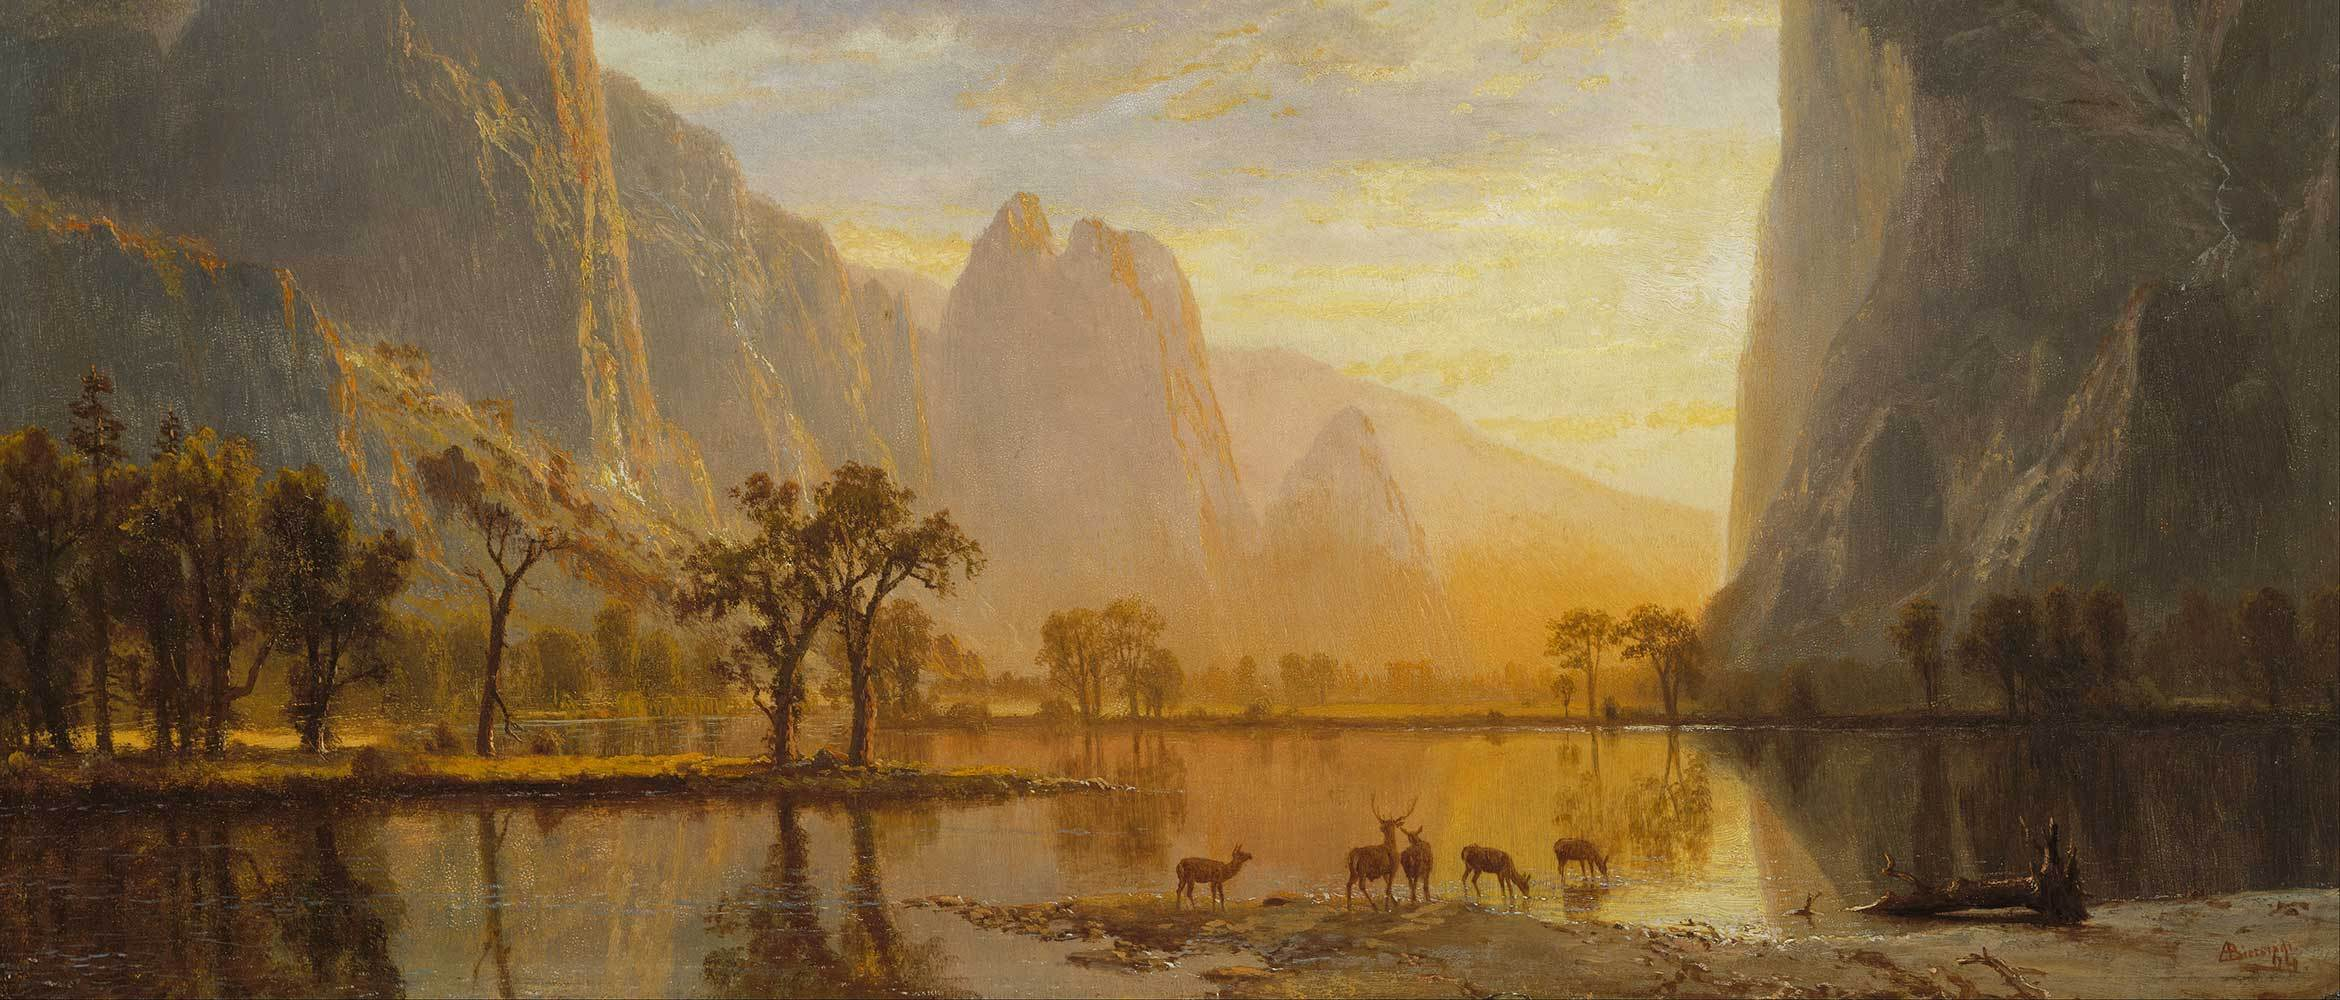 Albert Bierstadt: The Landscape Master | WildBounds